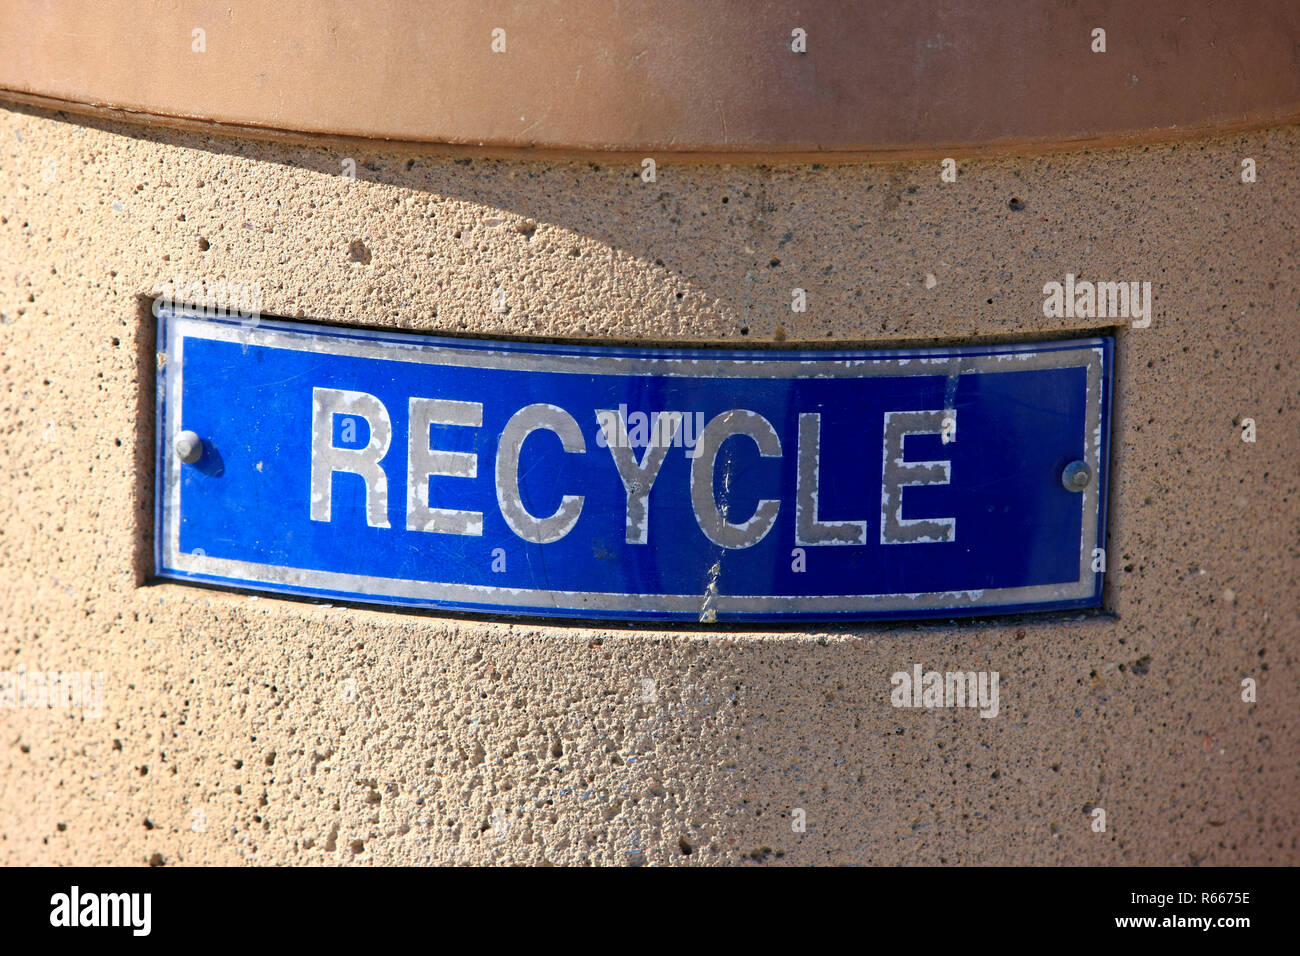 Close up of a RECYCLE sign on a trash can - Stock Image